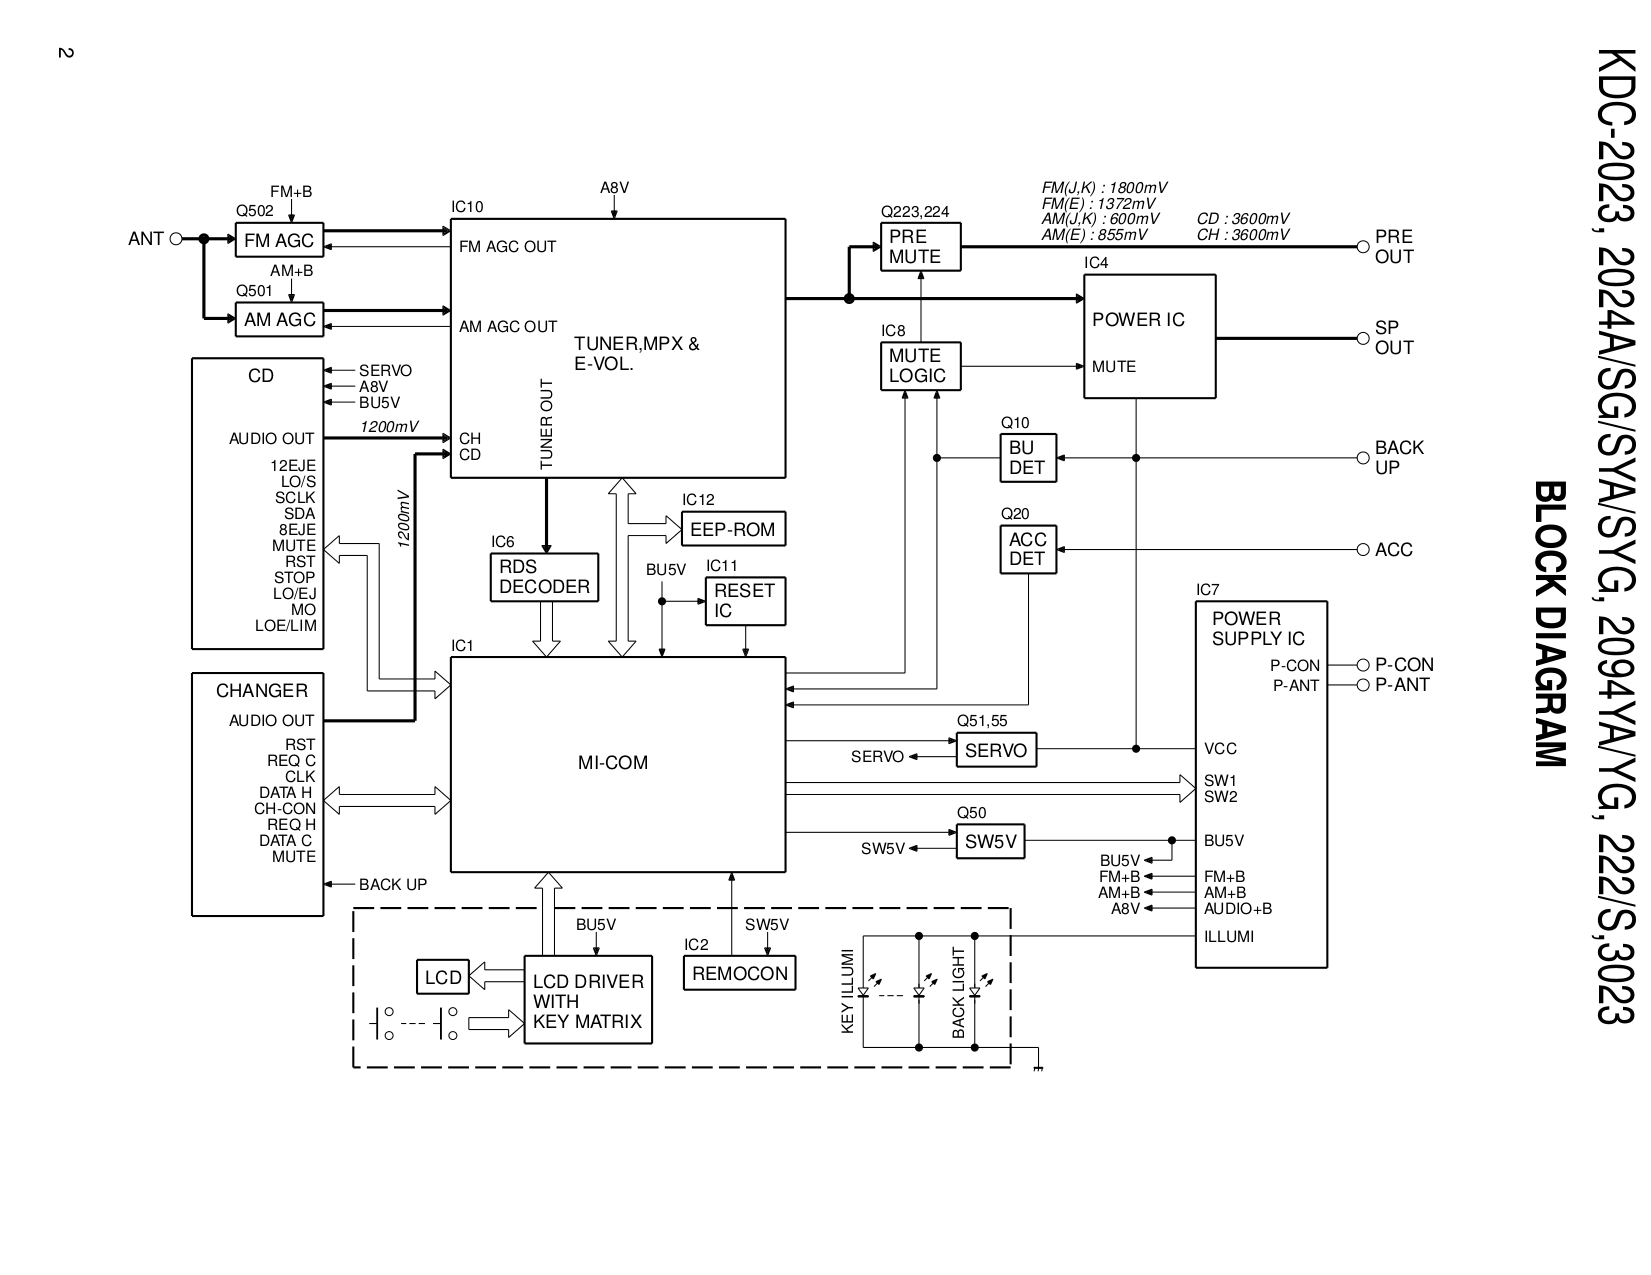 Kenwood kdc 122 wiring diagram wiring diagrams schematics pdf manual for kenwood car receiver kdc 4023 kenwood car receiver kdc 4023 pdf page preview kenwood kdc 122 wiring diagram asfbconference2016 Images